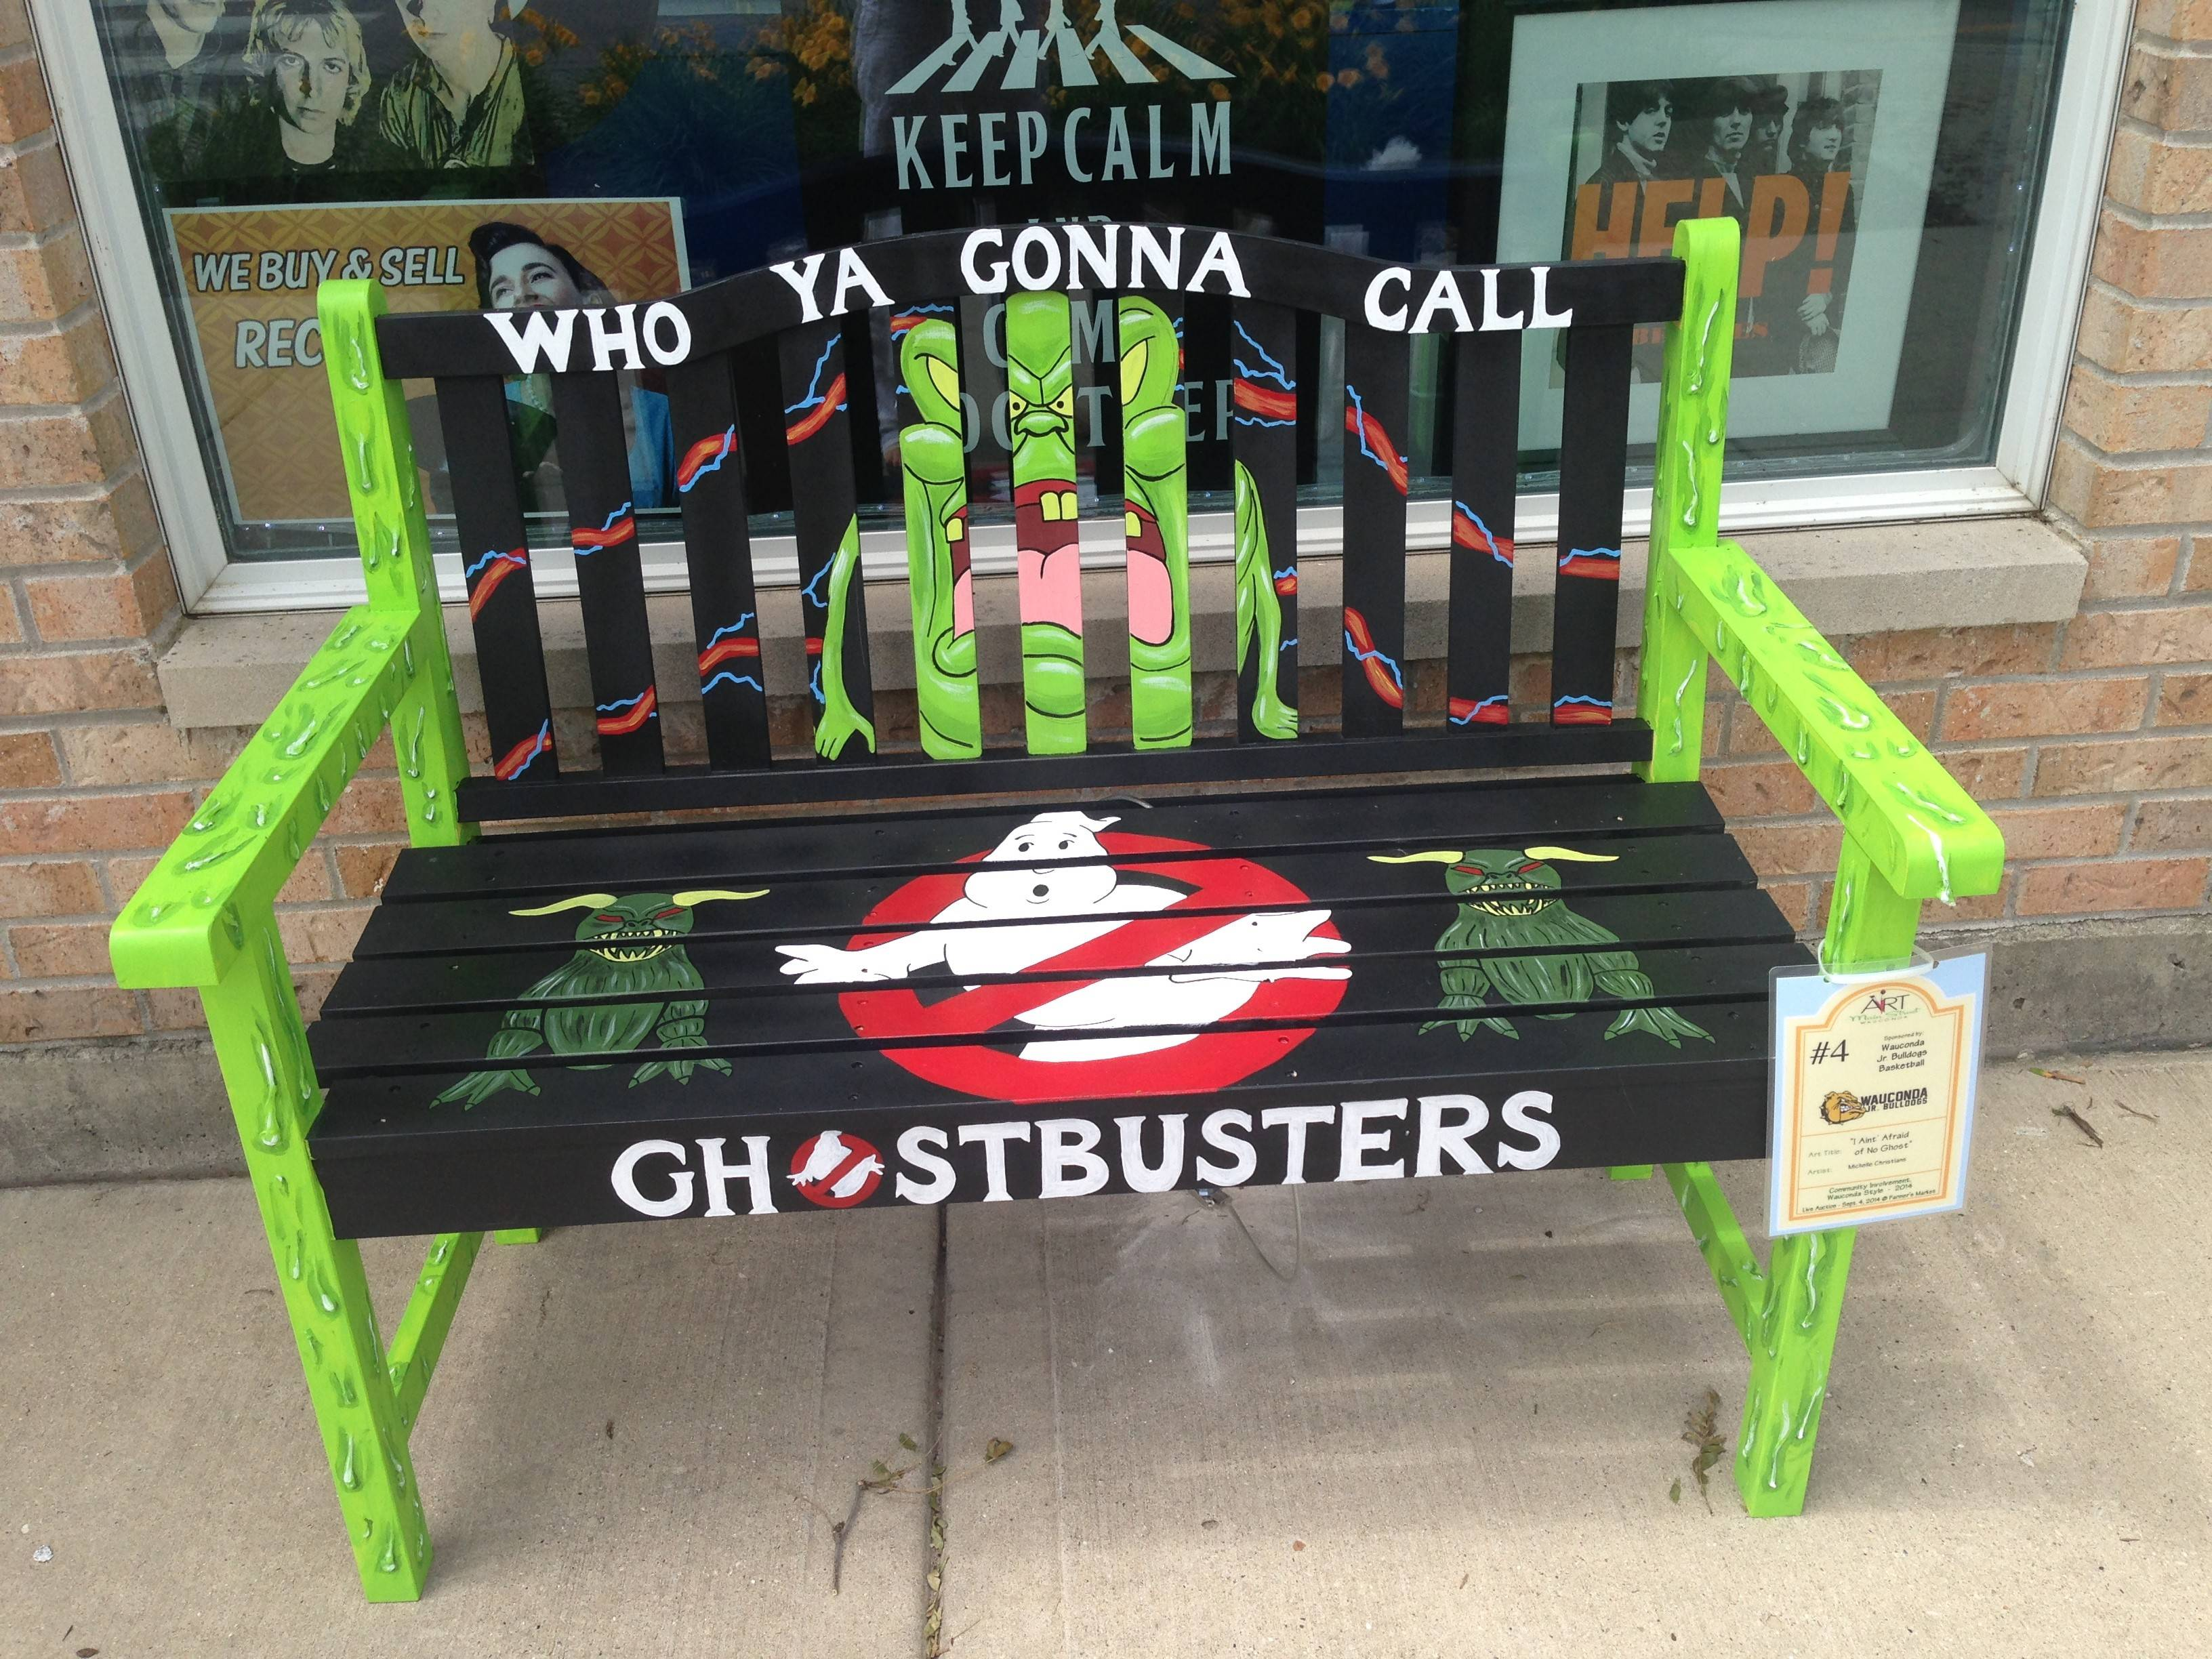 Annual art exhibition brings colorful benches to Wauconda's Main Street